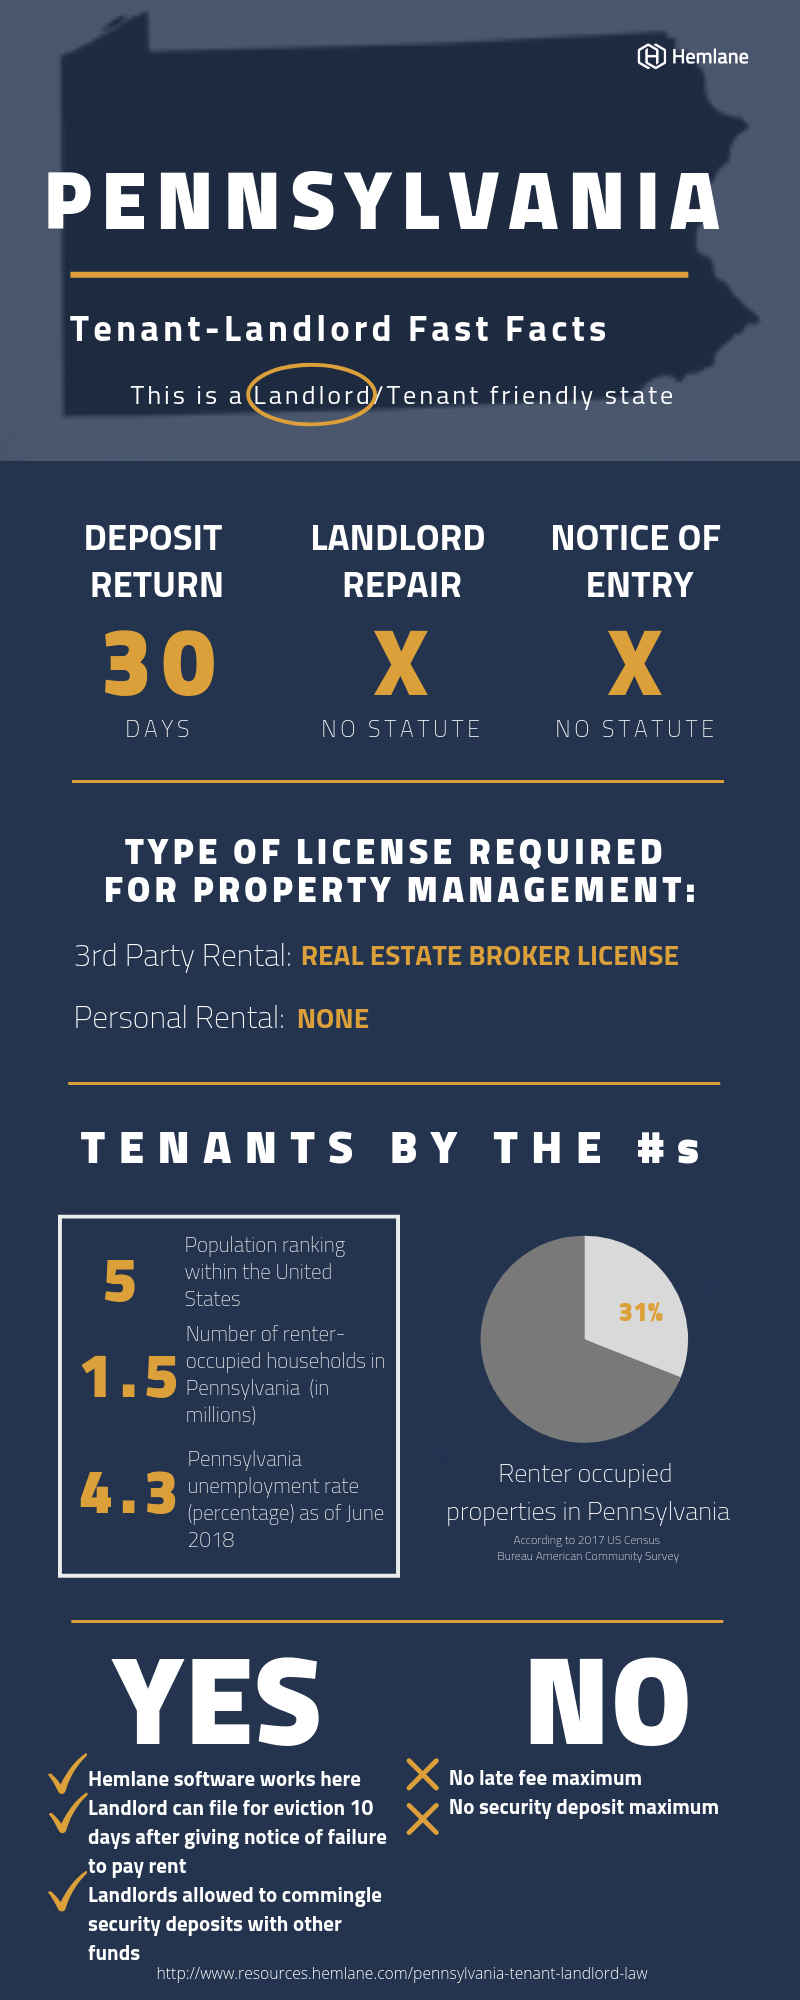 Pennsylvania-Landlord-Tenant-Law-Fast-Facts